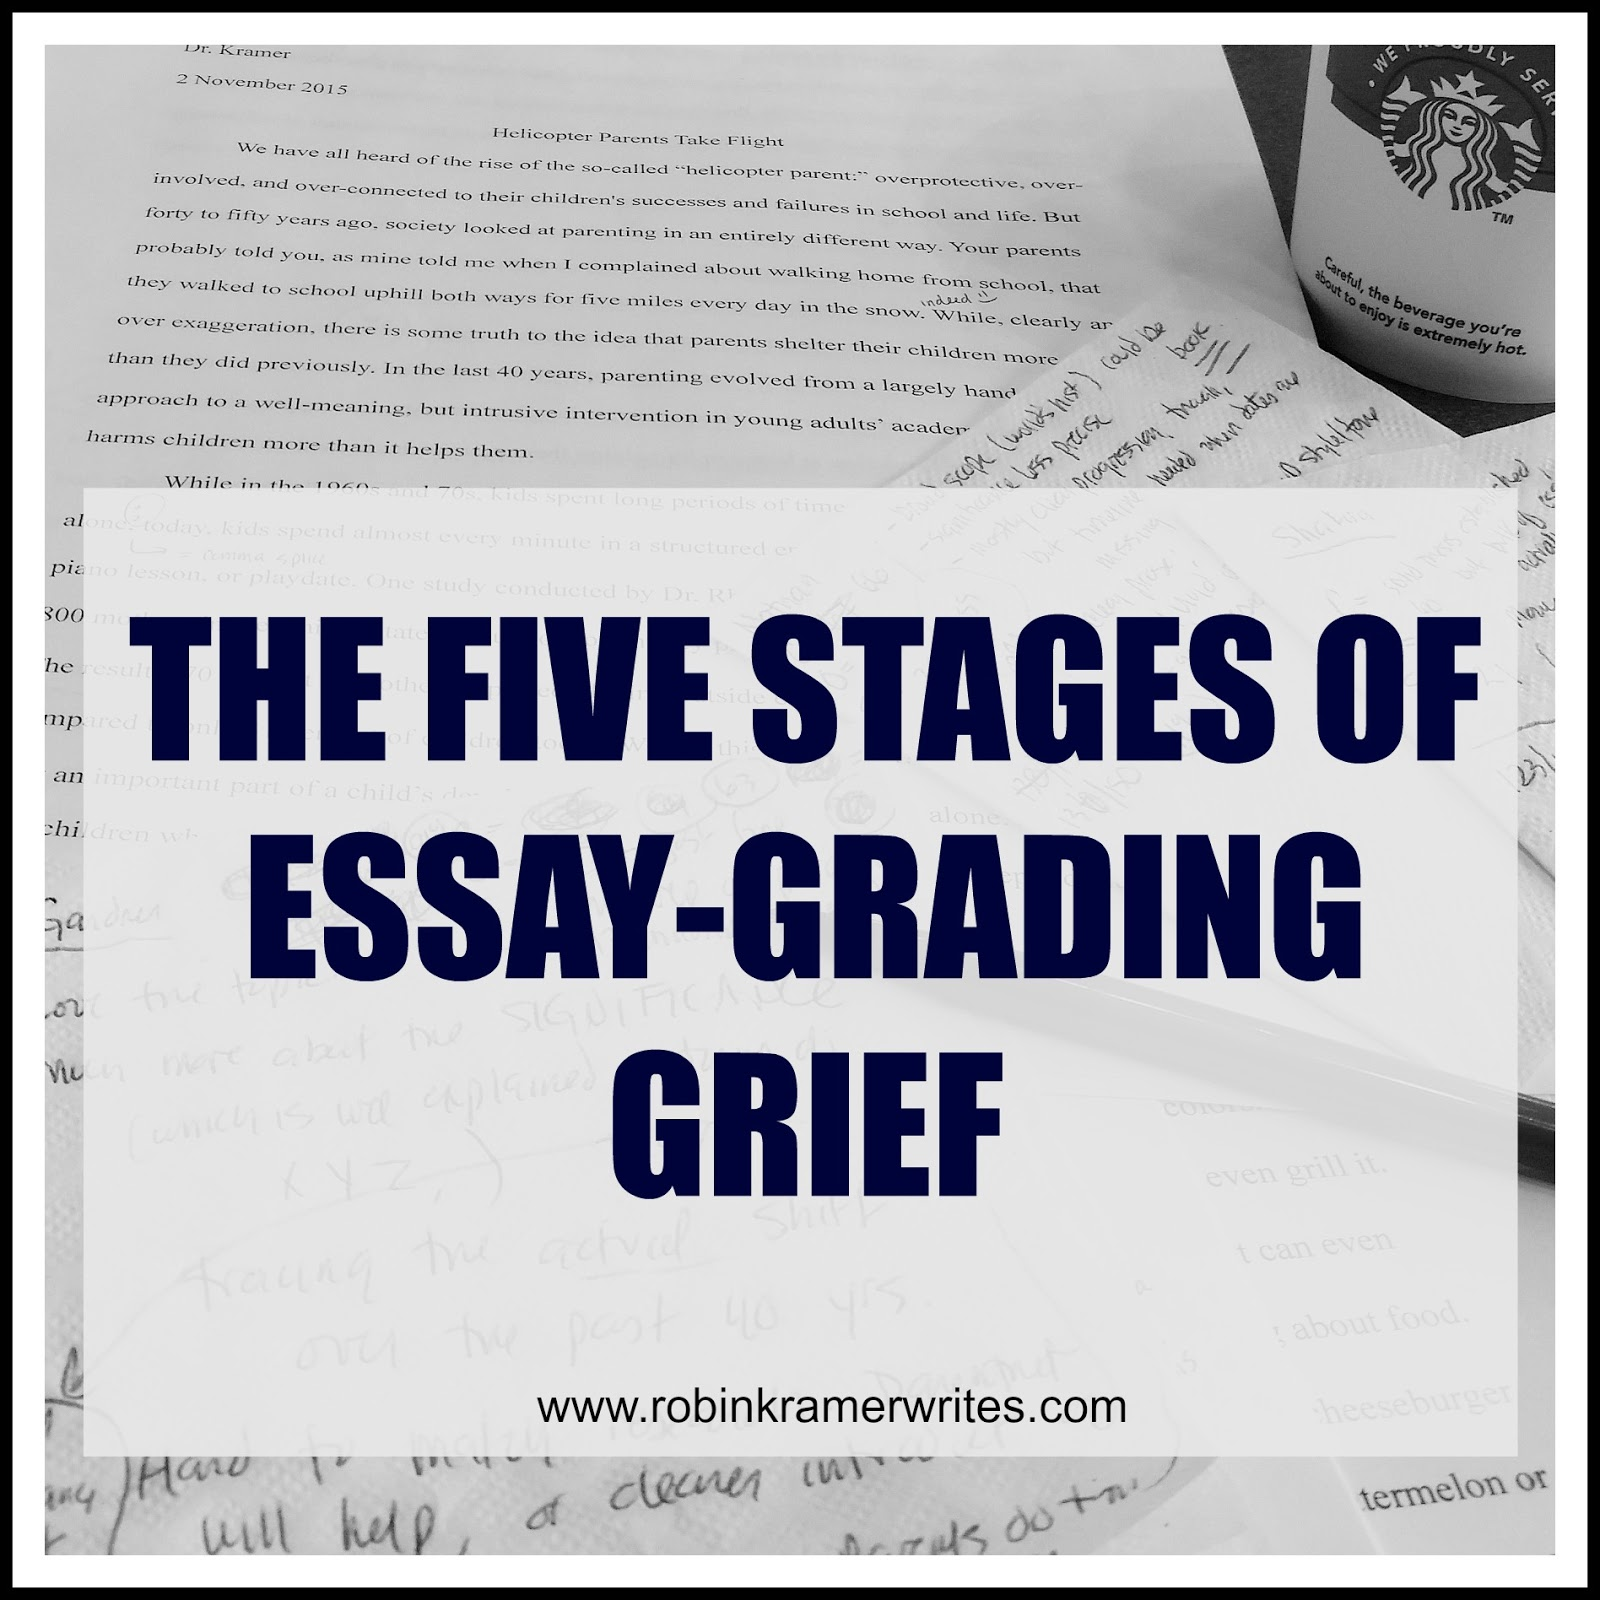 The Five Stages of Essay Grading Grief: higher education, just funnier